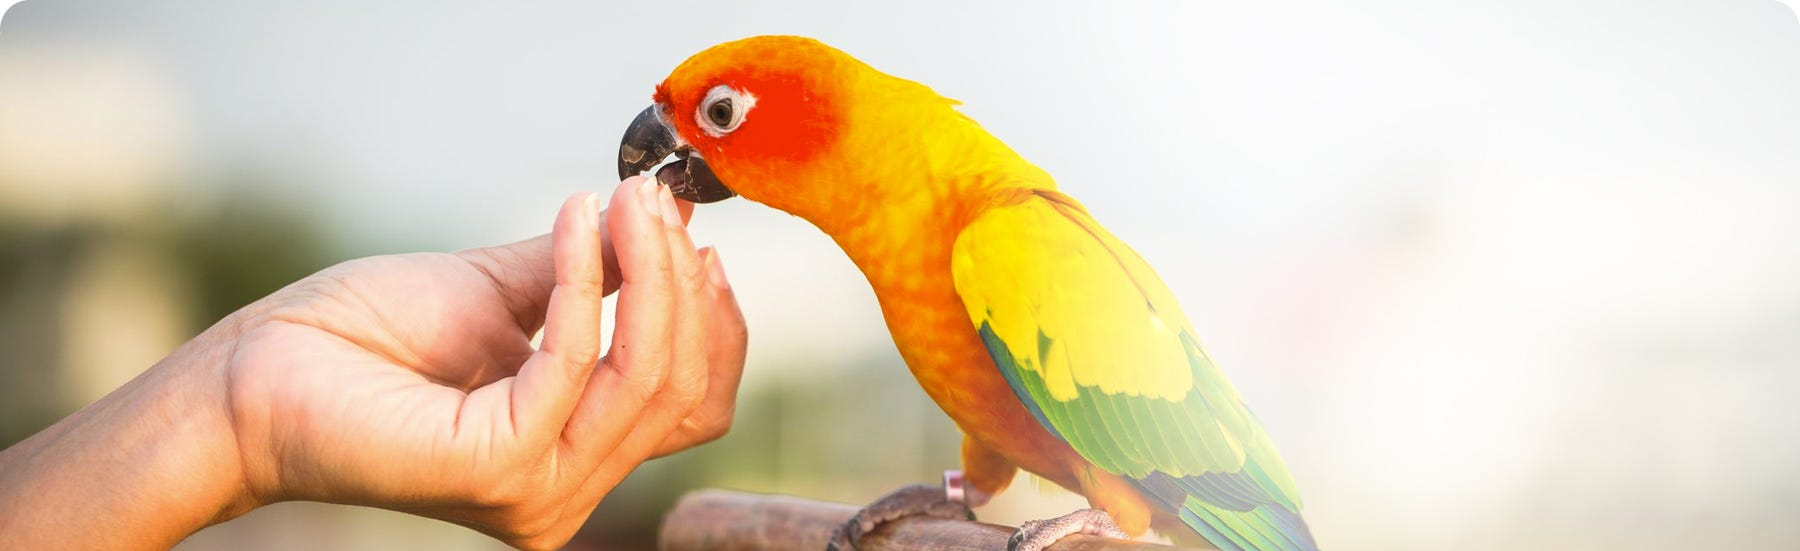 Vitamins and minerals for birds